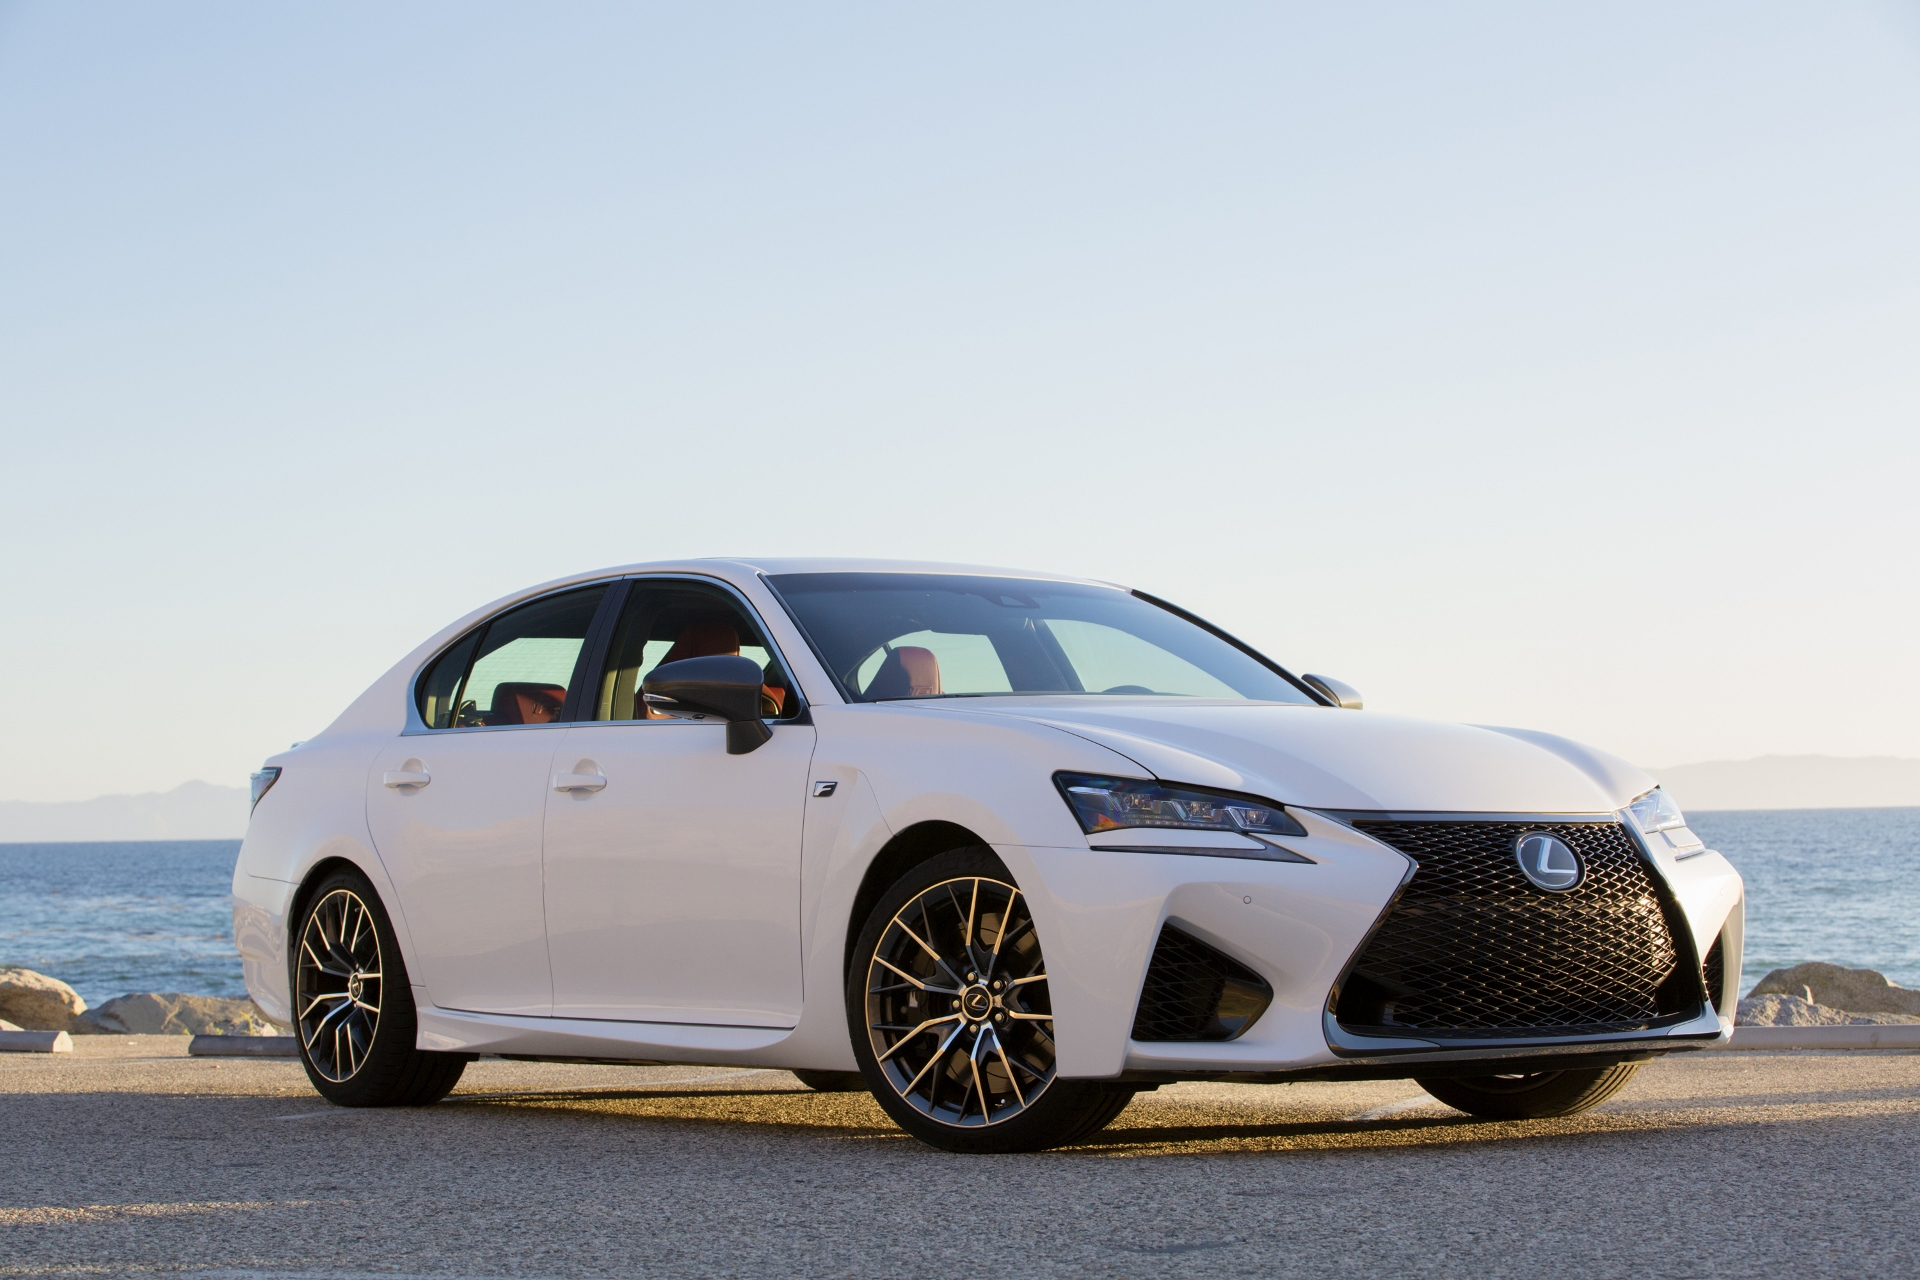 2017 Lexus Gs F Review Ratings Specs Prices And Photos The Car Connection